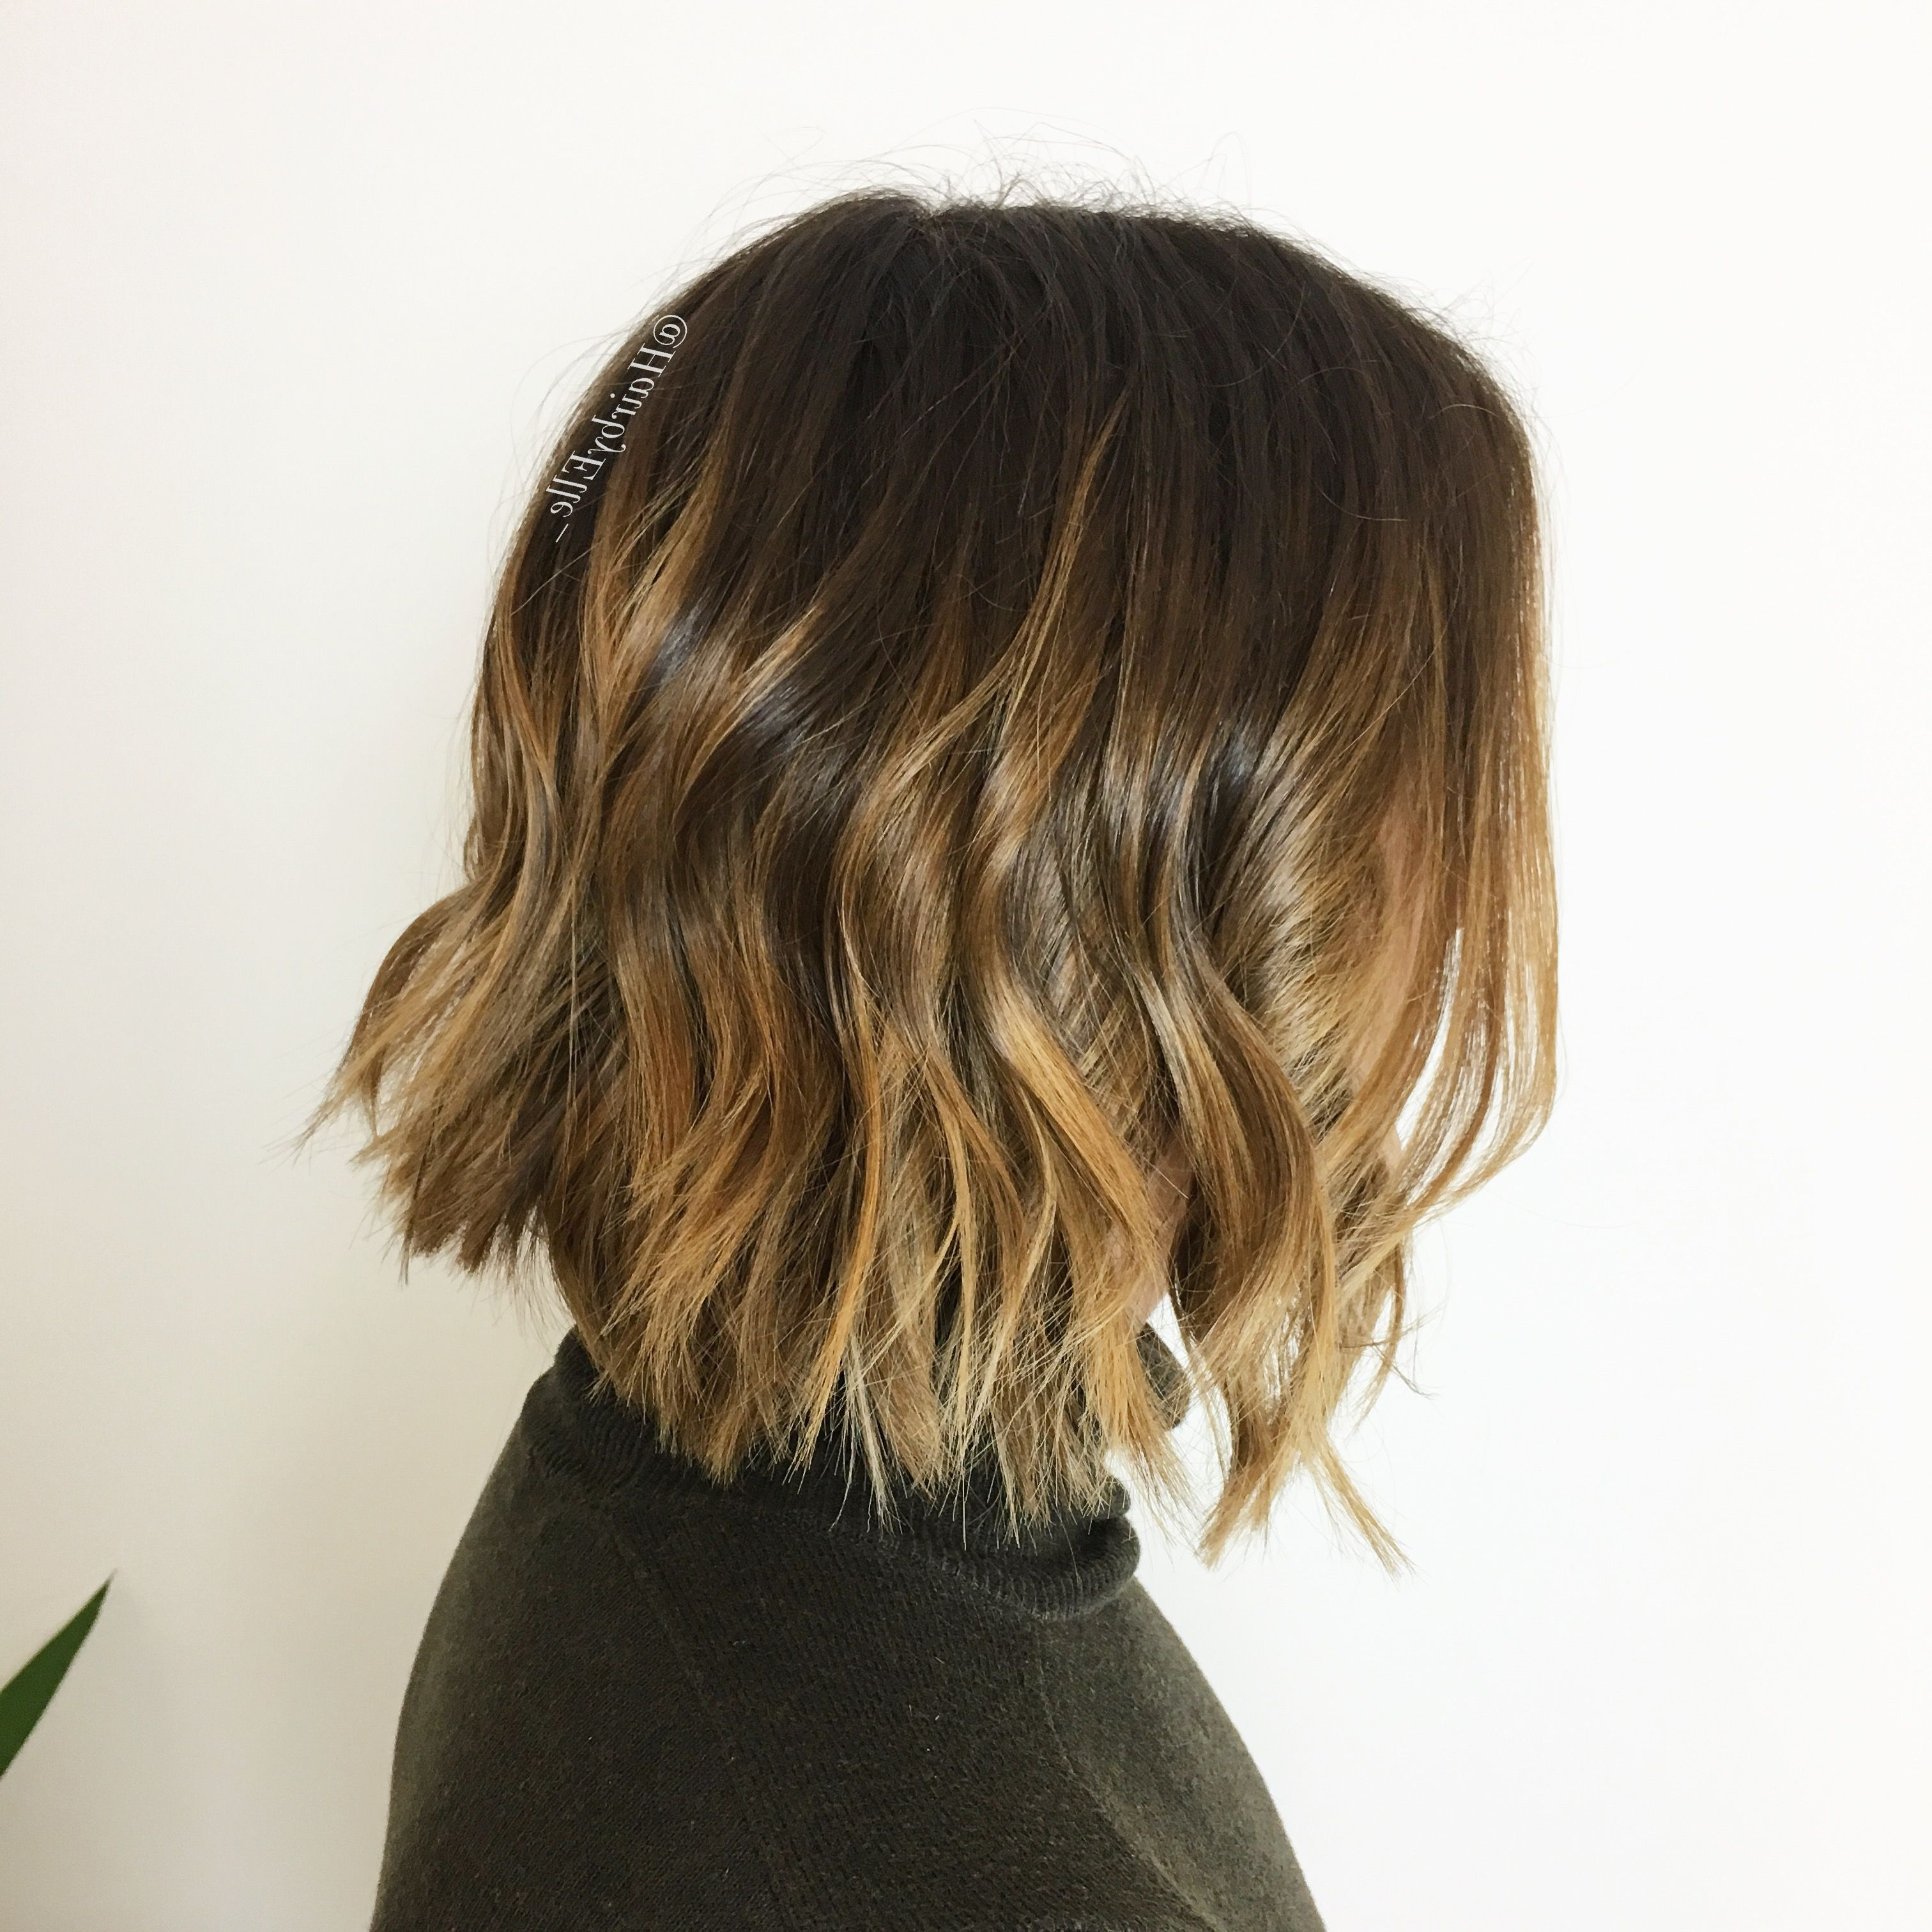 Famous Point Cut Bob Hairstyles With Caramel Balayage With Choppy Blunt Bob, Balayage Caramel Highlights With A Textured Wave (View 5 of 20)